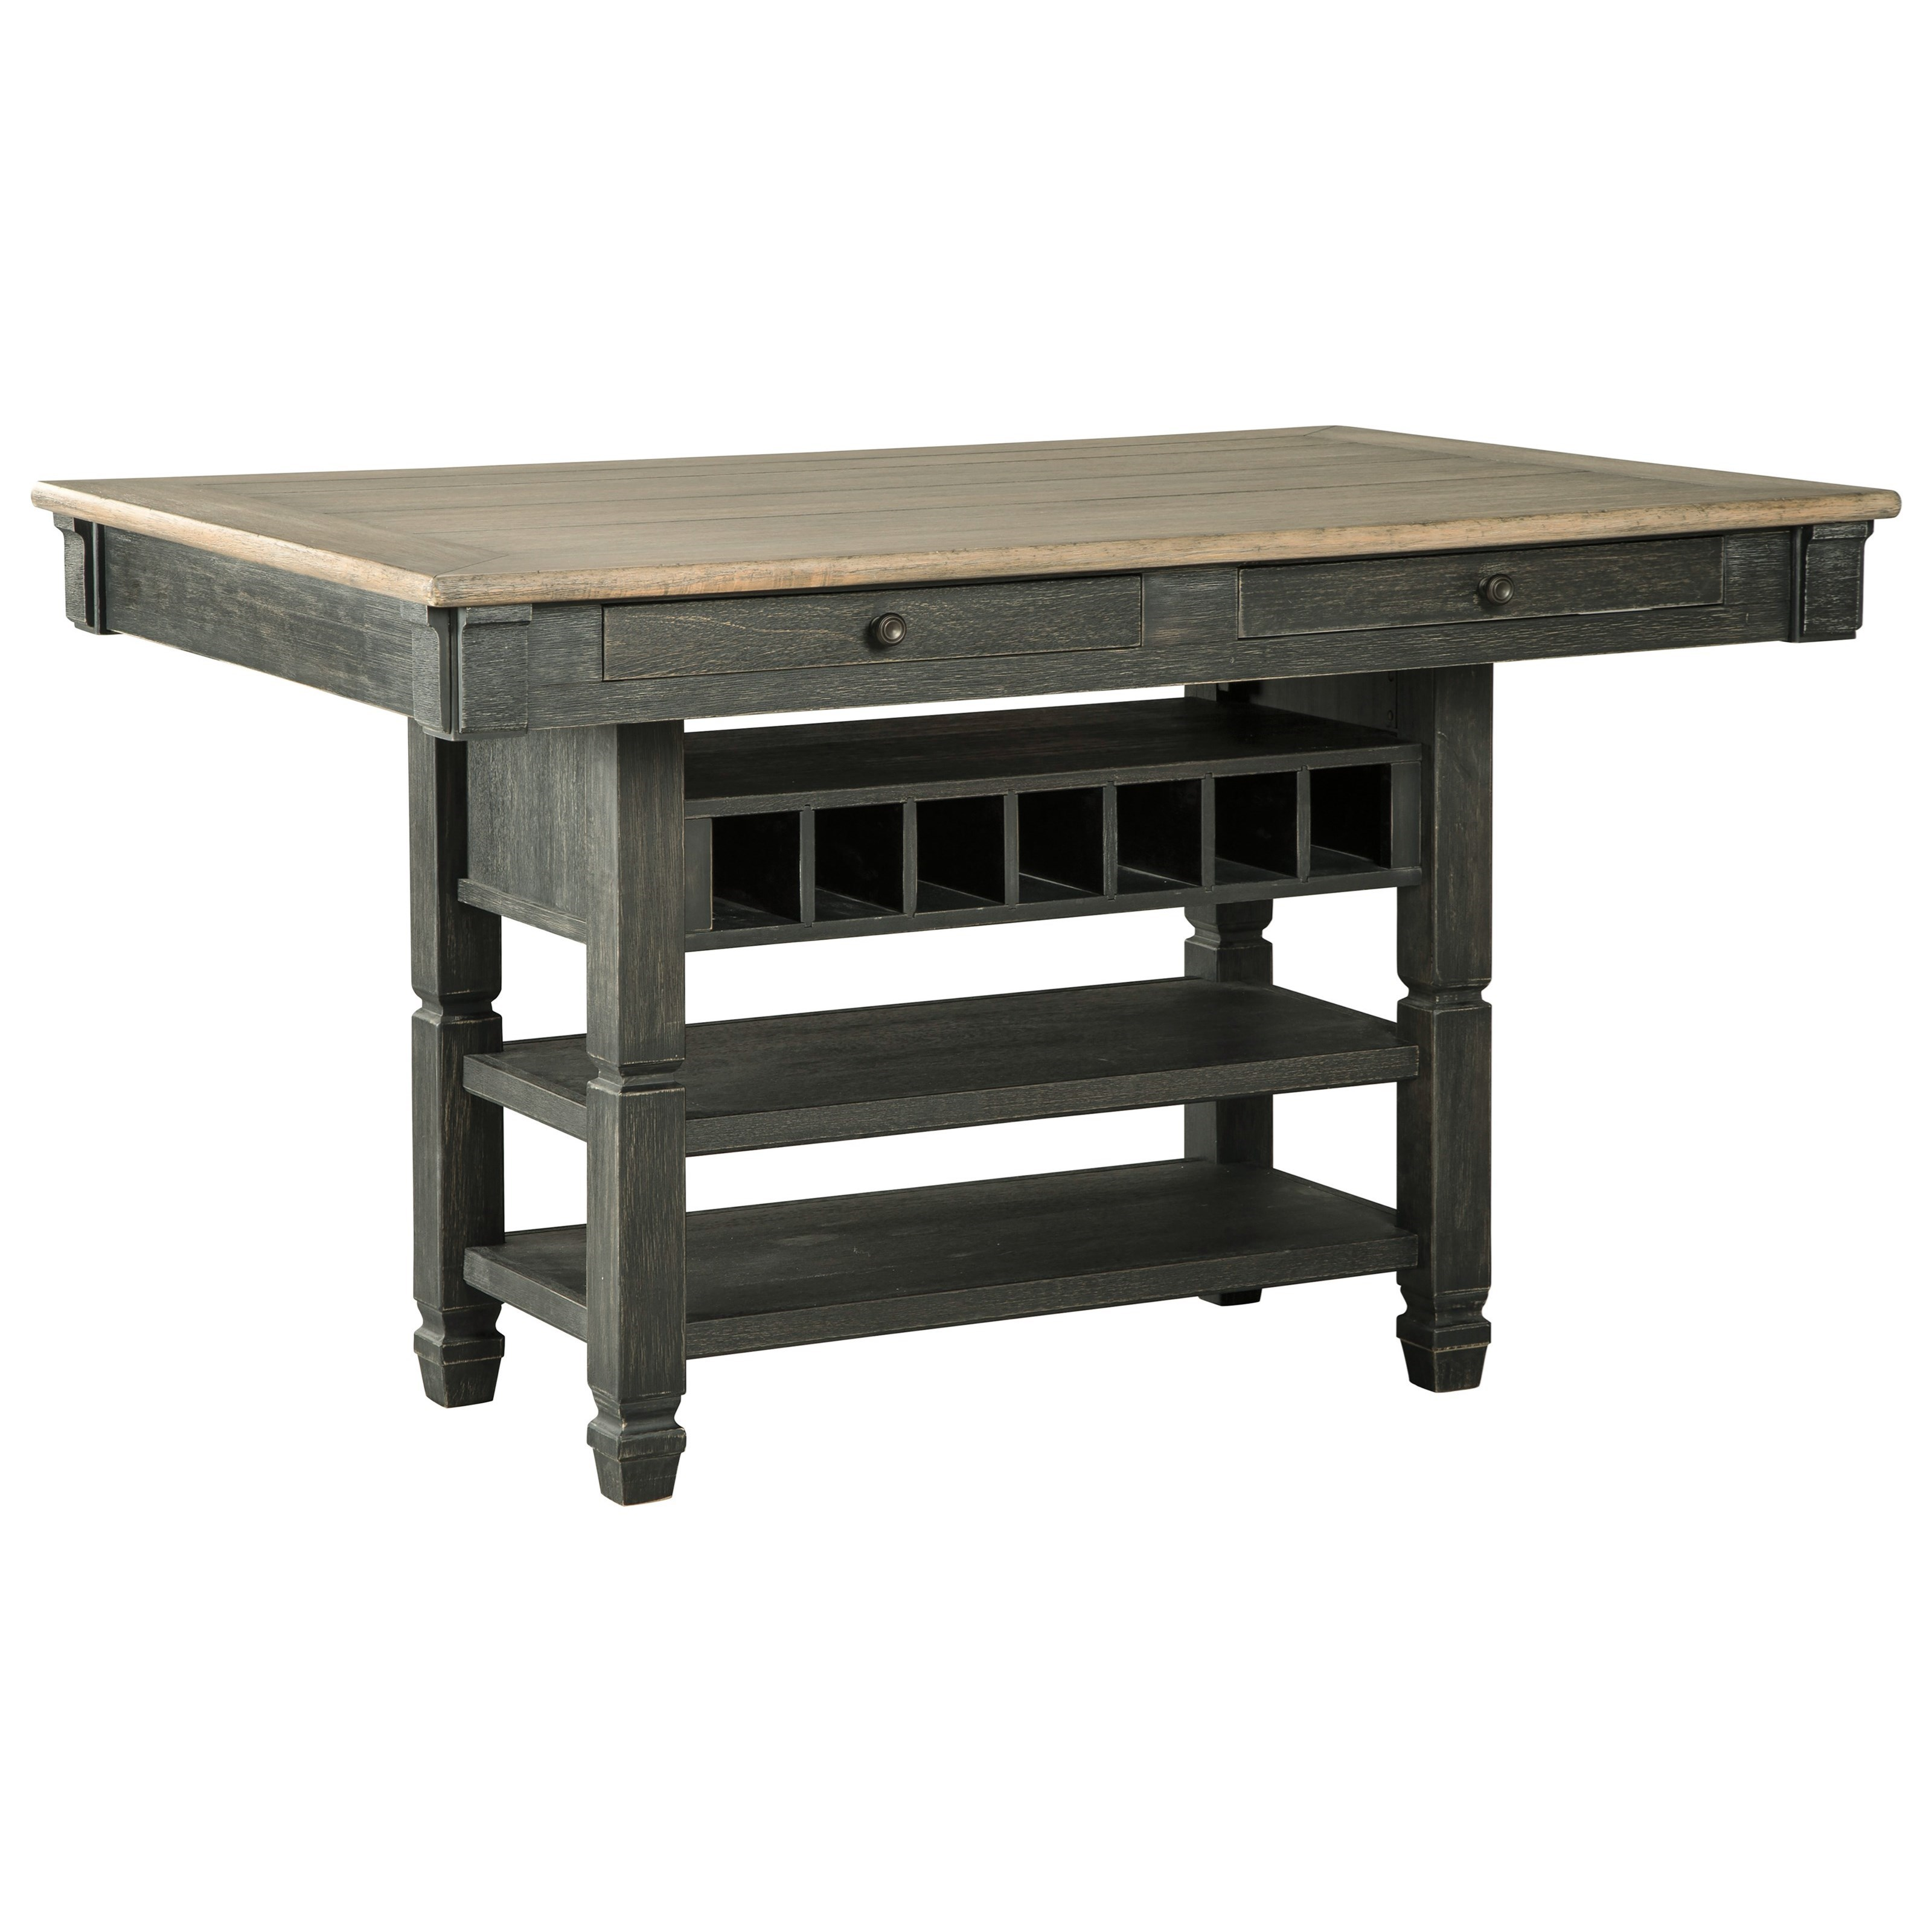 Tyler Creek Rectangular Dining Room Counter Table by Signature Design by Ashley at Value City Furniture